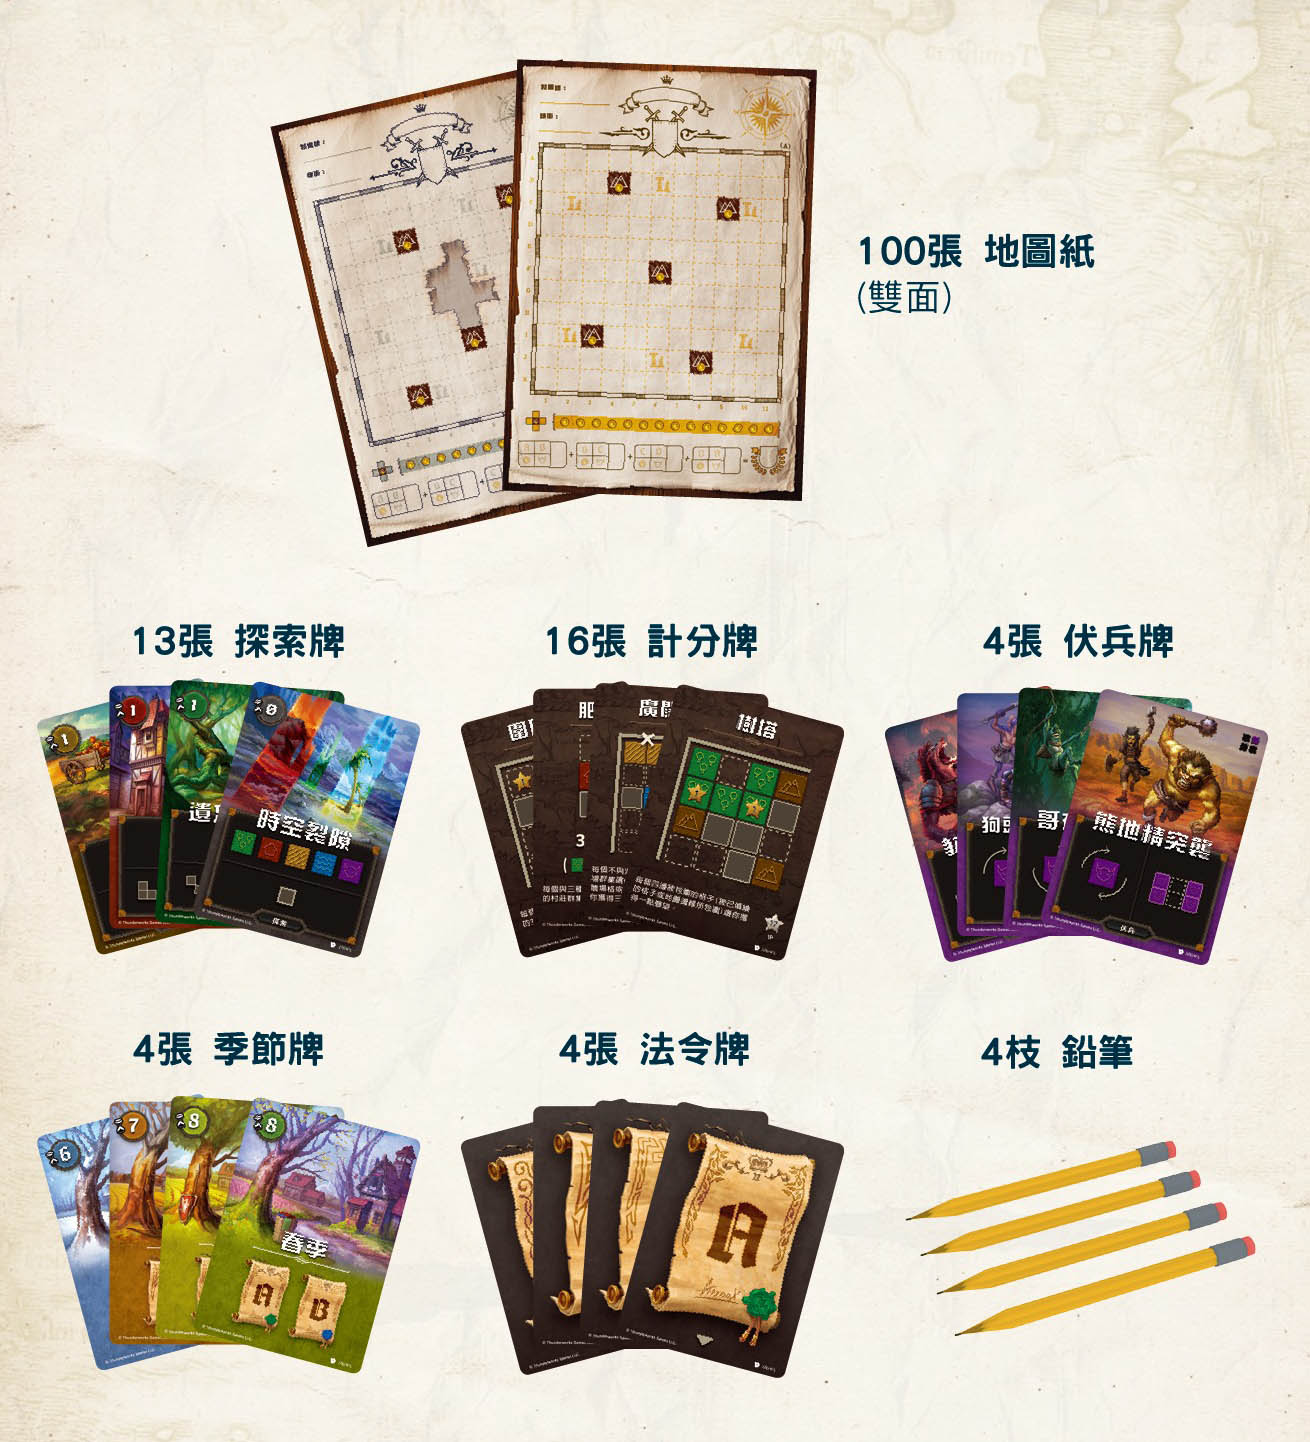 內容 Cartographers: A Roll Player Tale 王國製圖師 | 香港桌遊天地 Welcome on Board Game Club Hong Kong